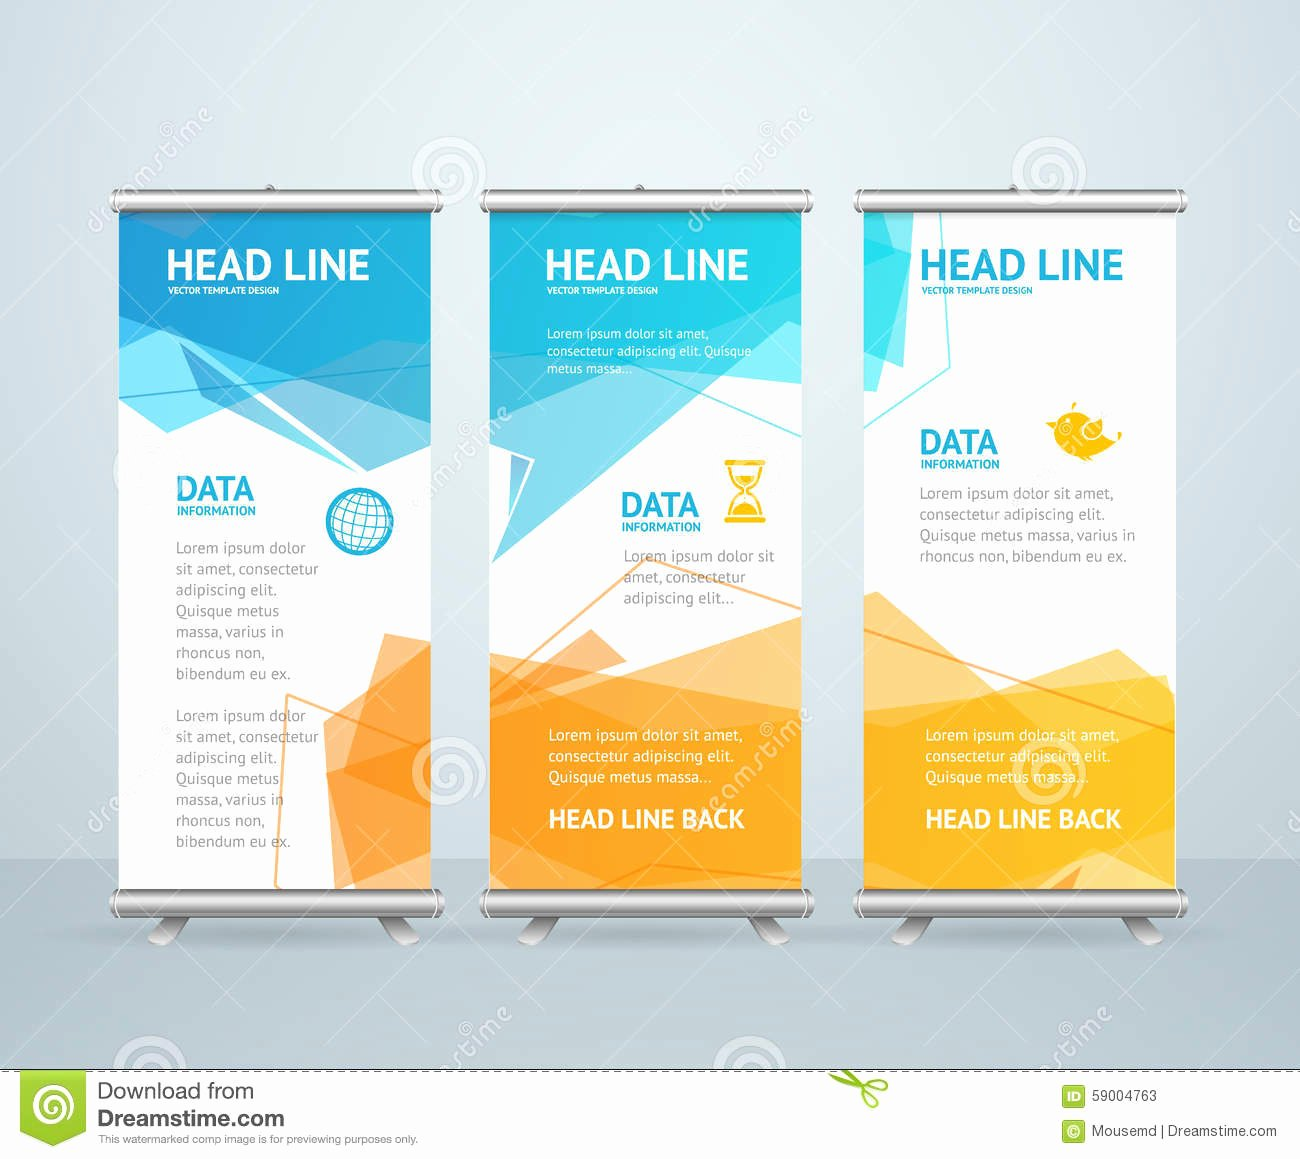 Pop Up Banner Template Awesome Pop Up Banner Designs – Emmamcintyrephotography